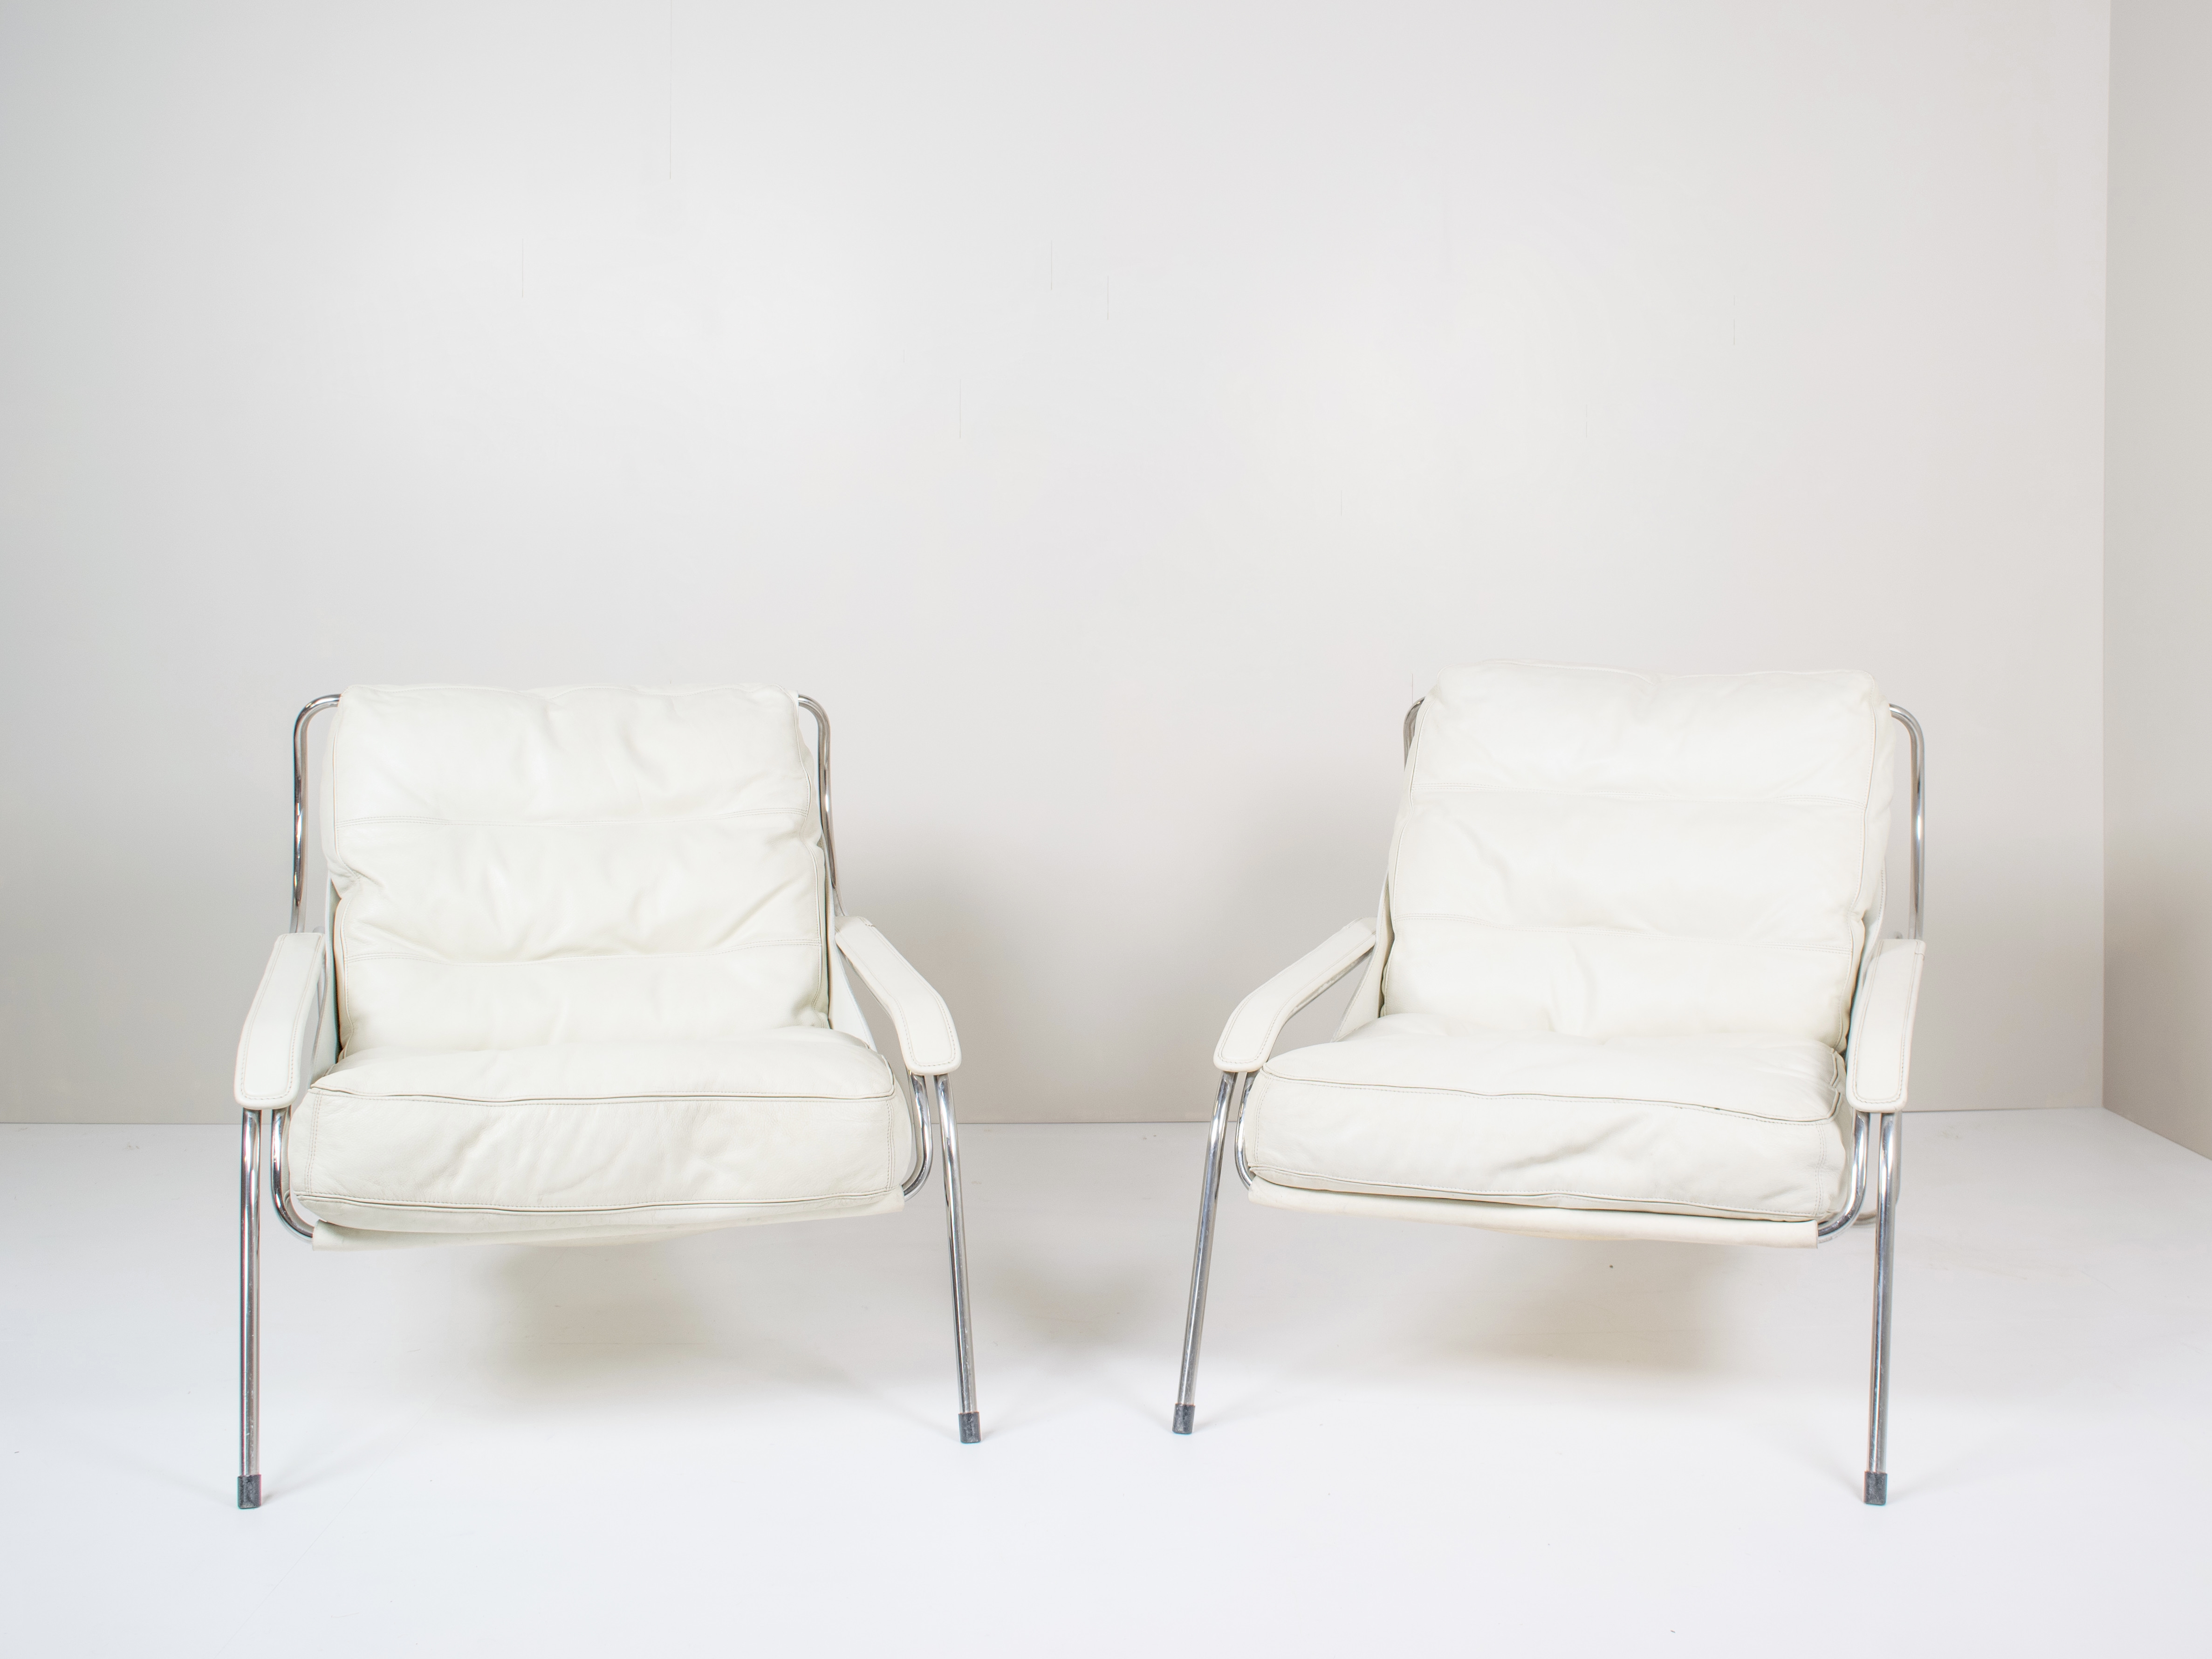 Pair of Marco Zanuso Maggiolina White Leather Chairs by Zanotta, Italy 1947